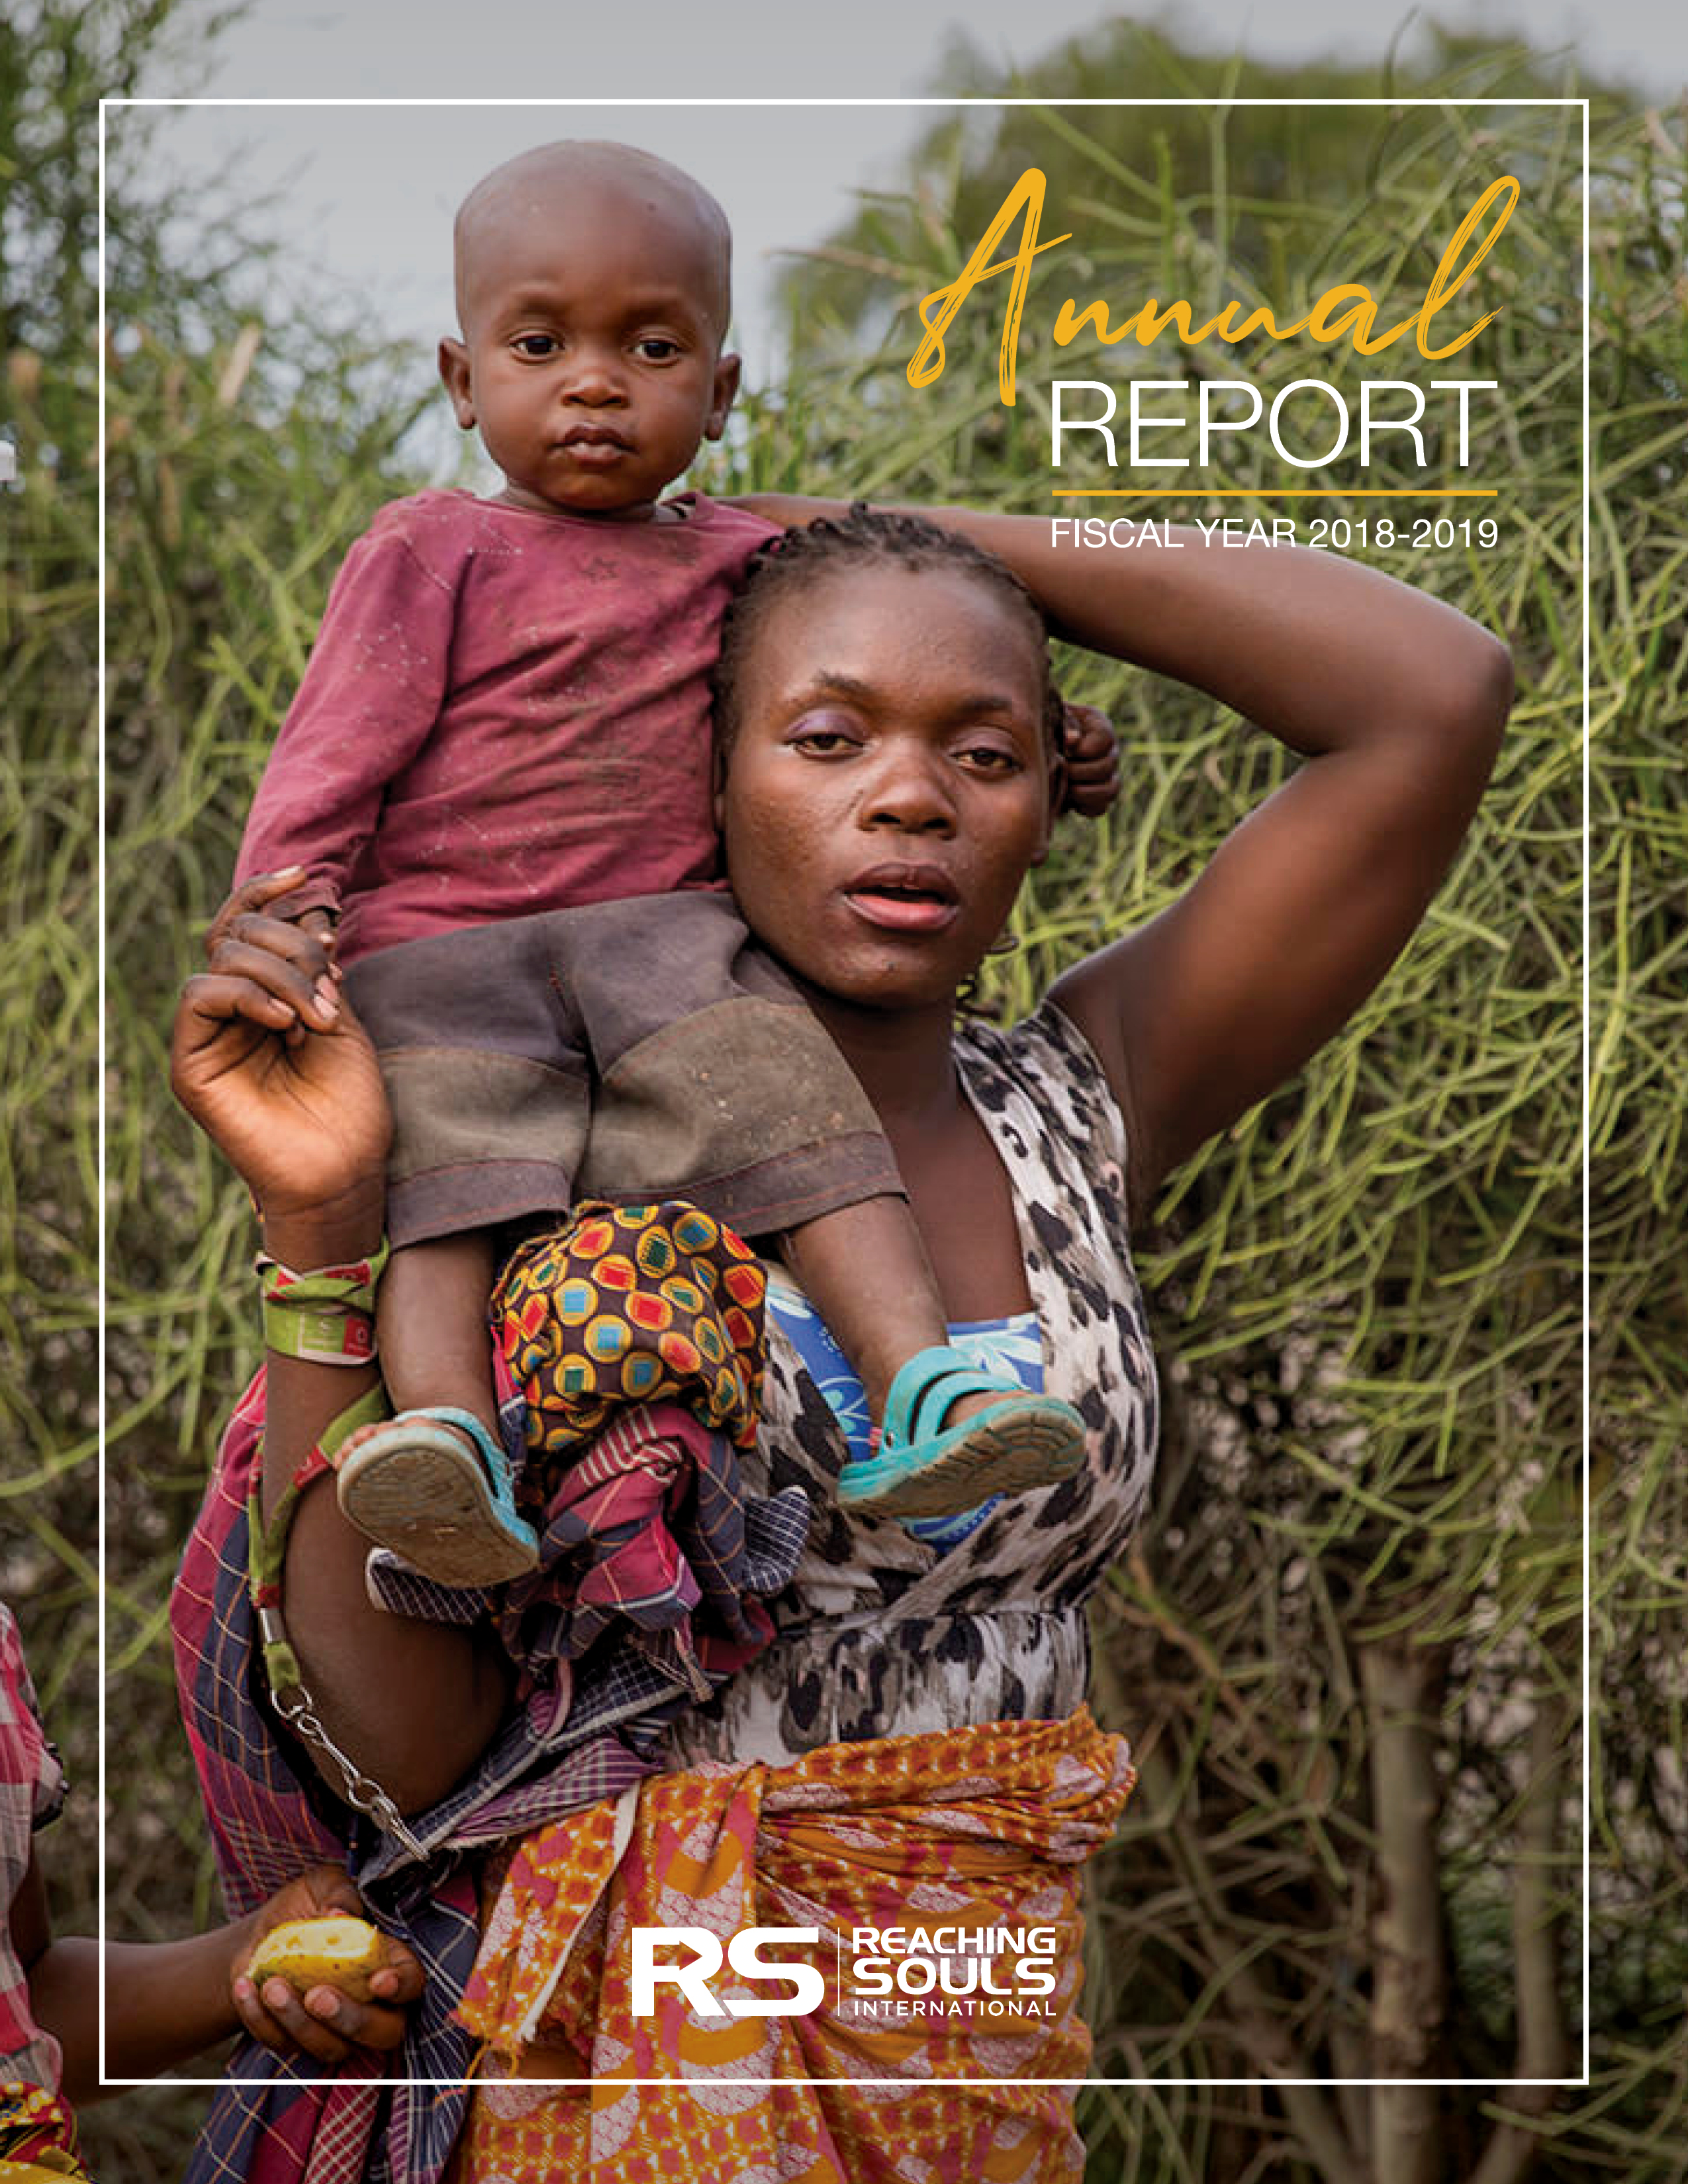 annual-report-fy1819-cover